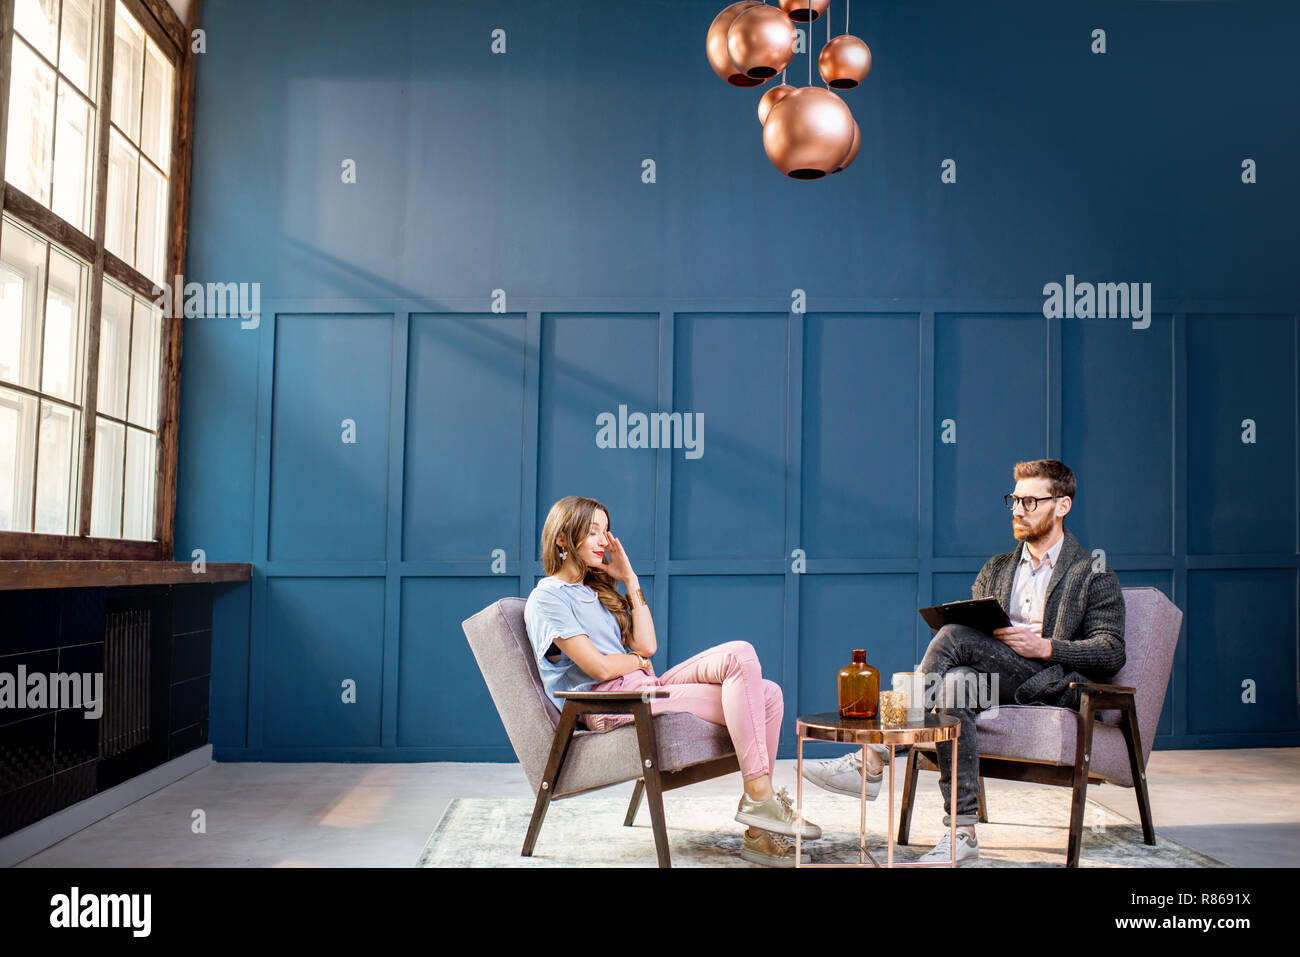 Woman Client Sitting With Male Psychologist On The Chairs